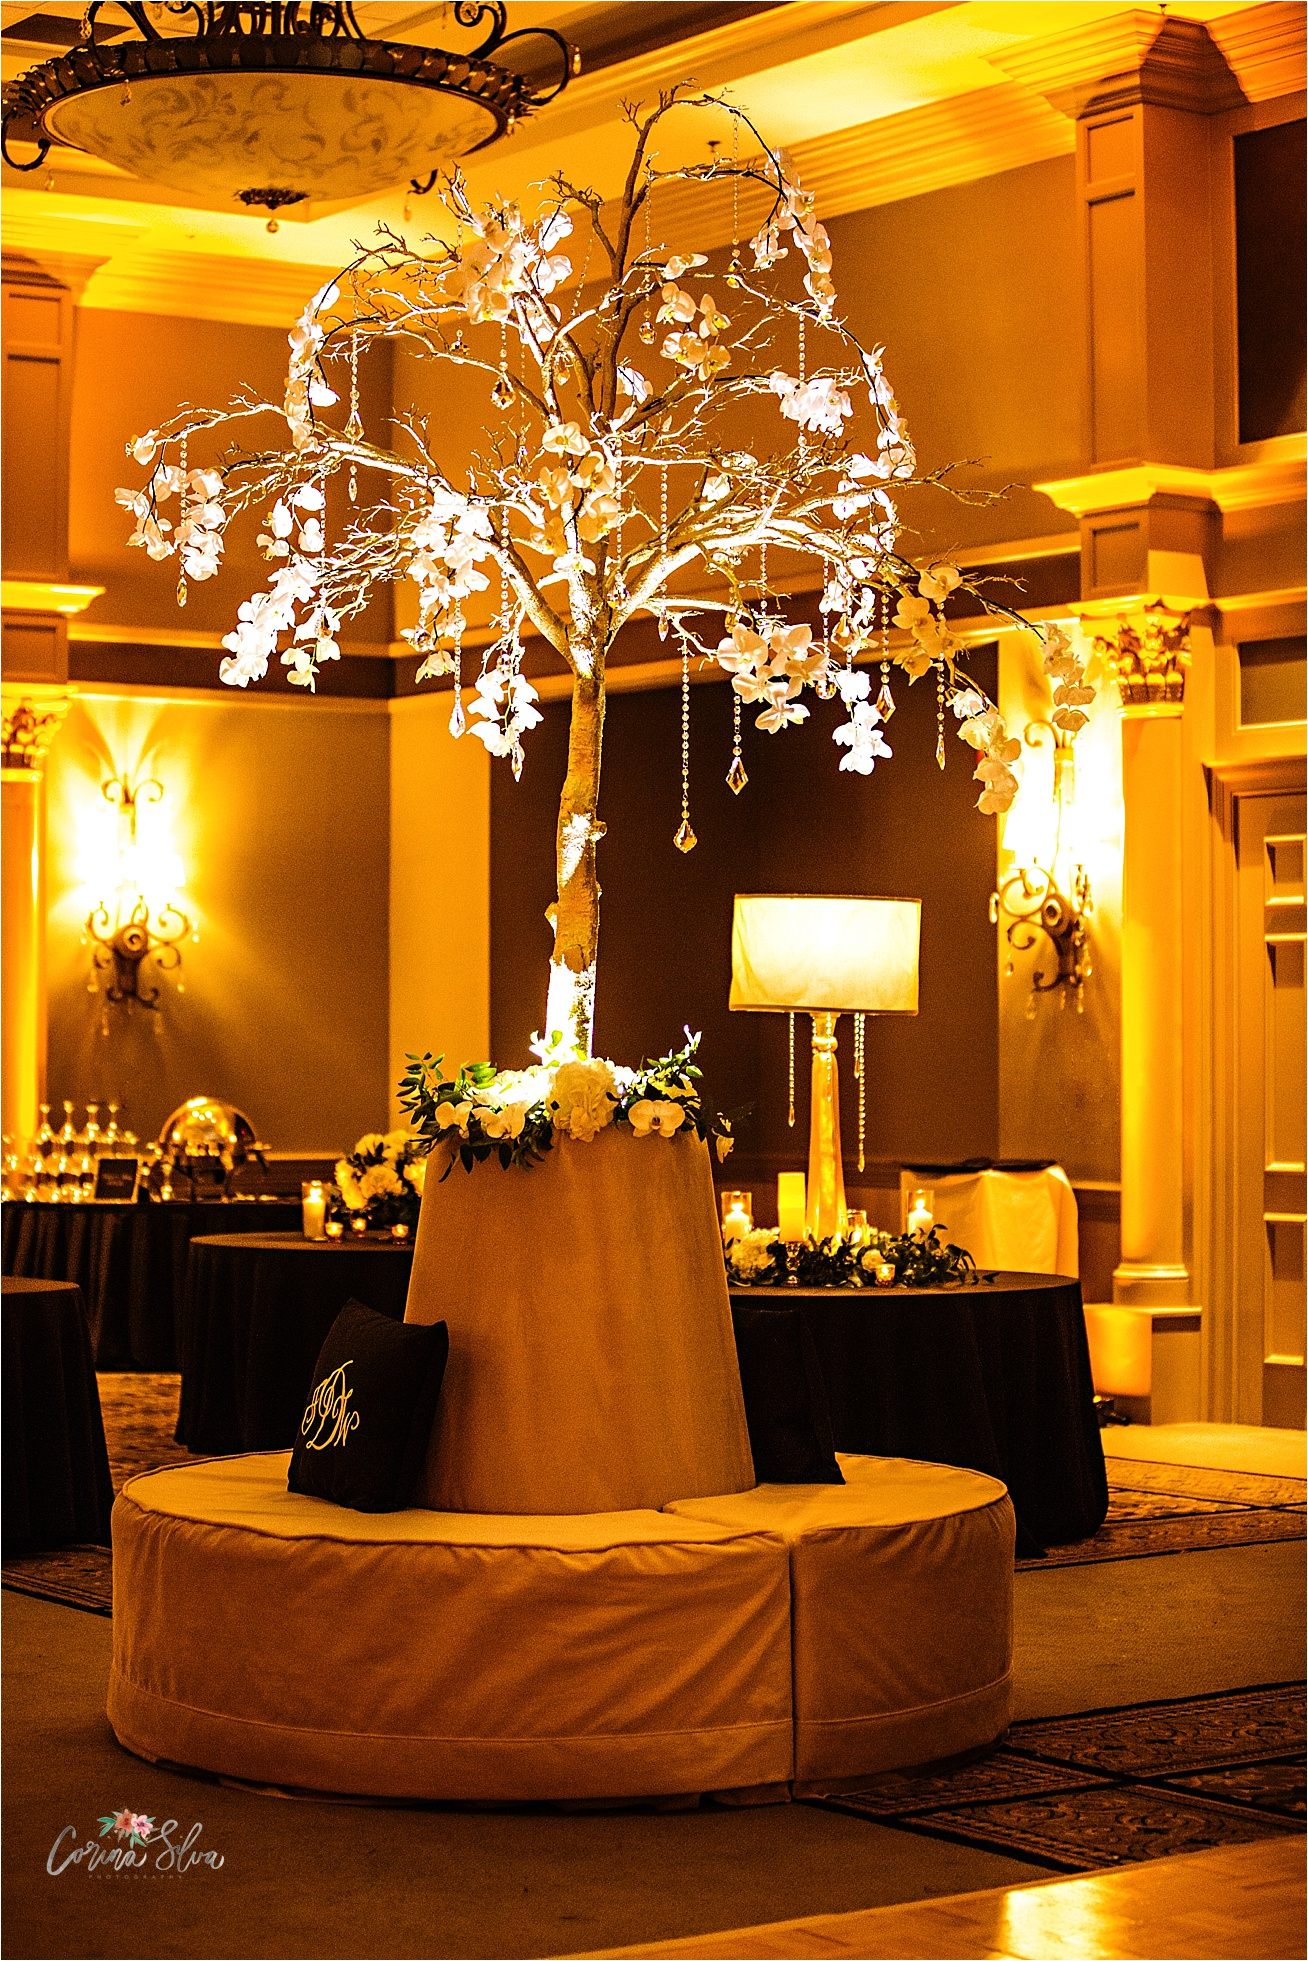 RSG-Event-and-Designs-luxury-wedding-decor-photos, Corina-Silva-Studios_0032.jpg